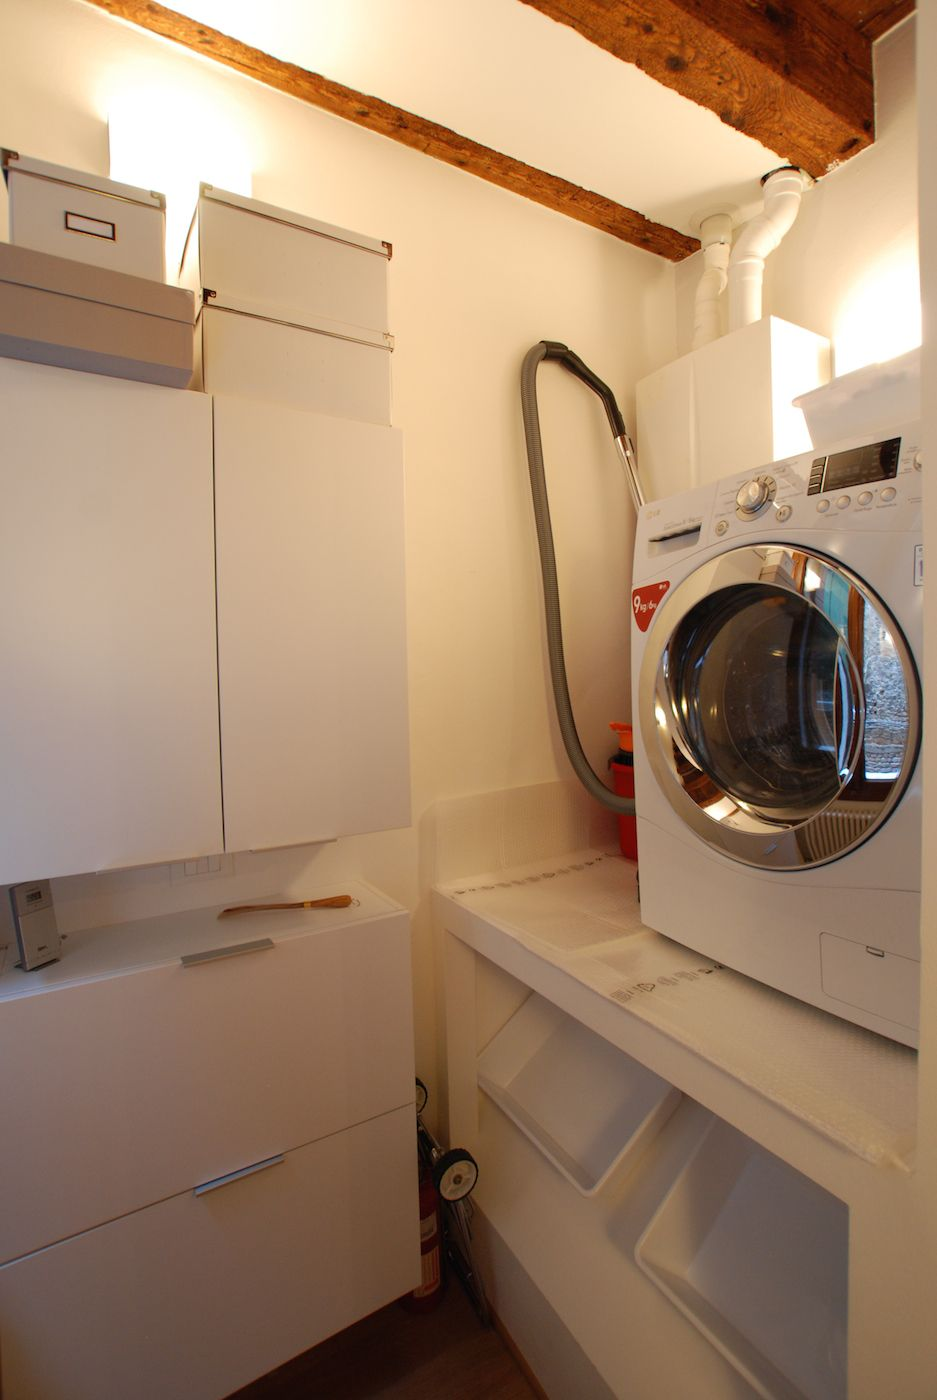 there is also a small laundry with all-in-one washer and dryer